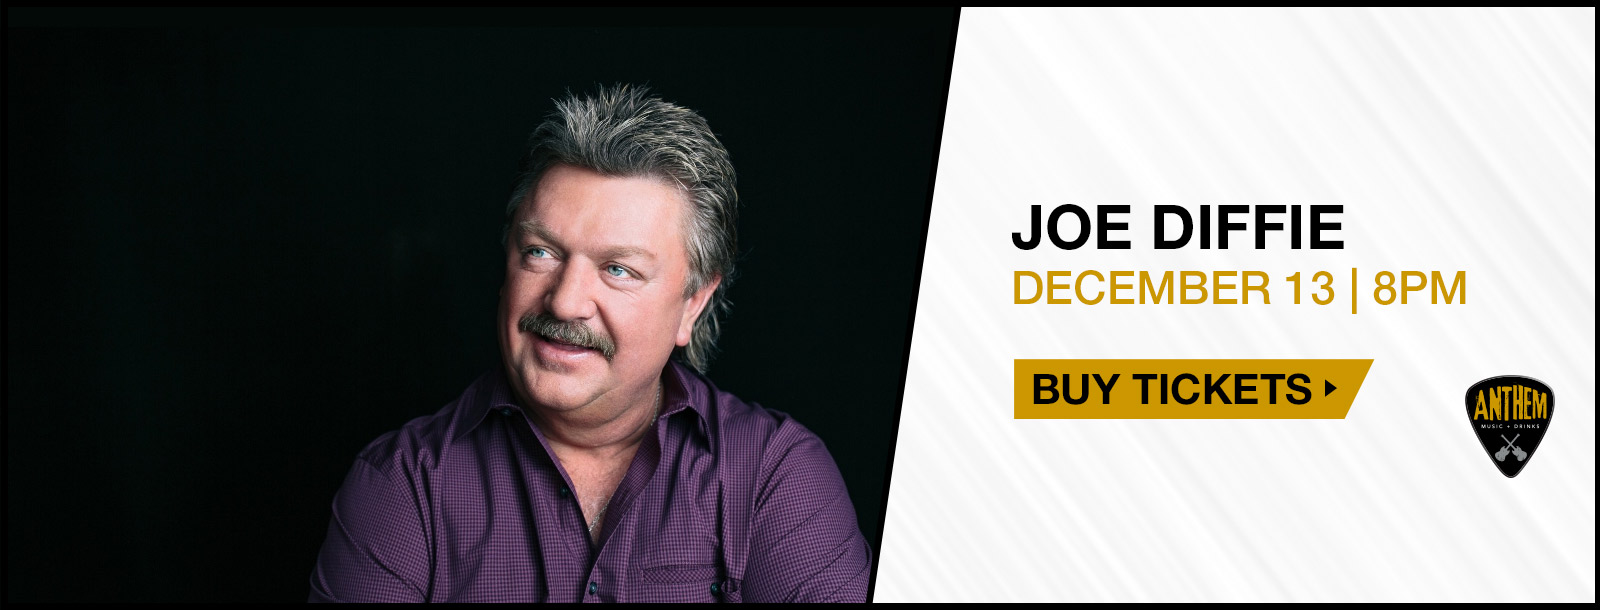 joe diffie anthem sioux city events